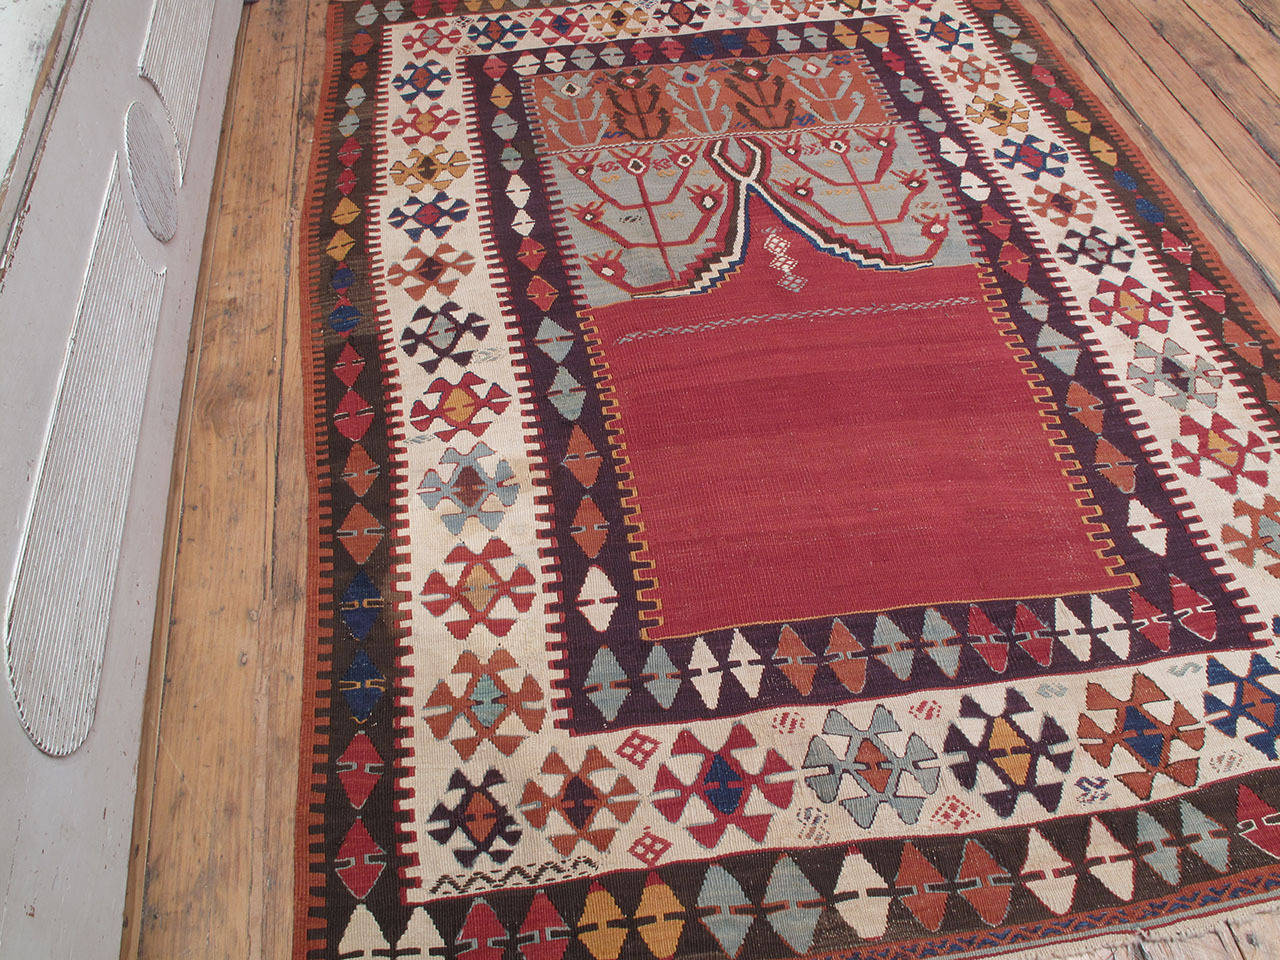 Turkish Antique Central Anatolian Kilim with